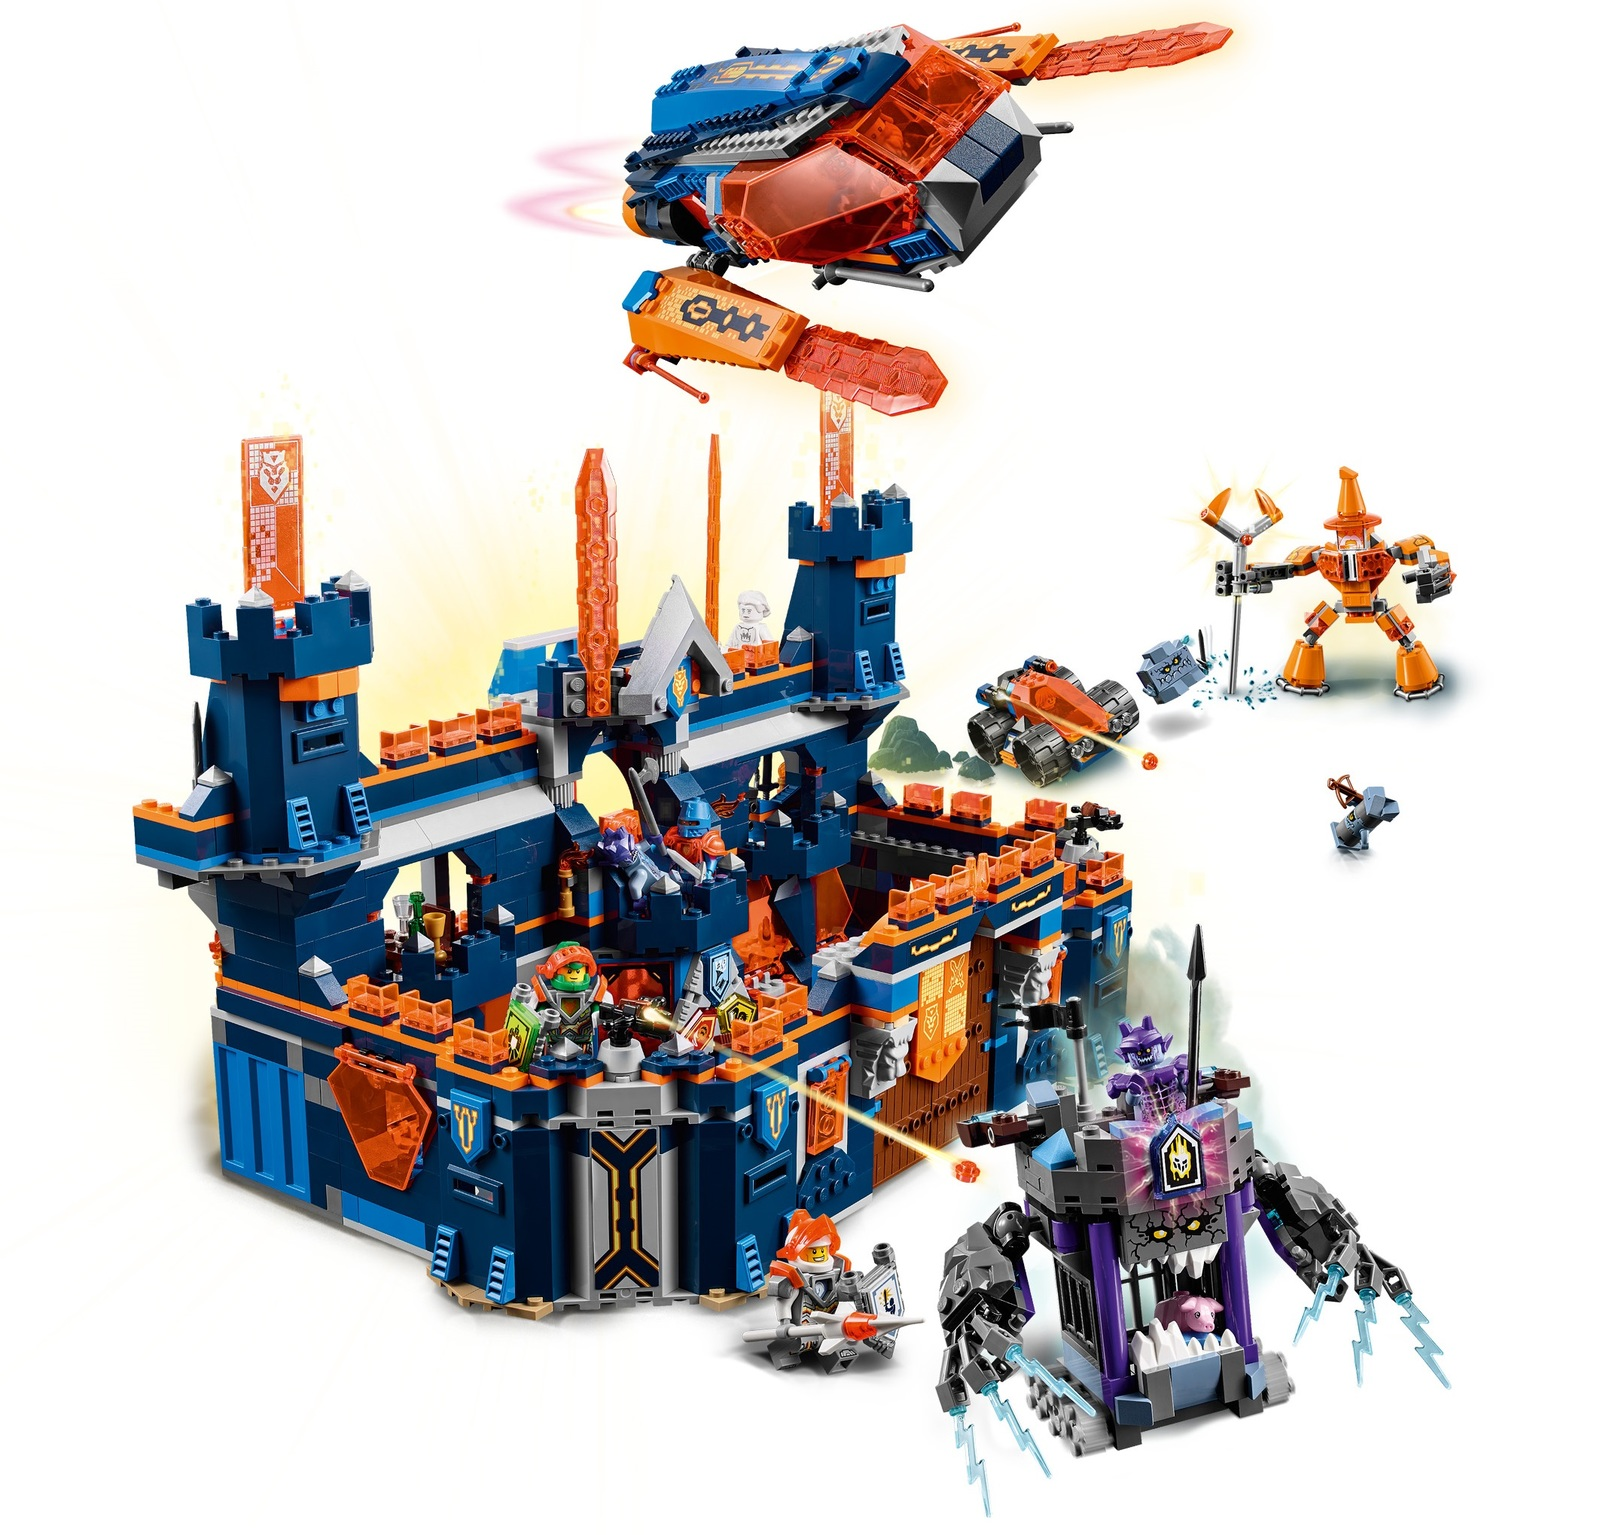 Lego Nexo Knights Knighton Castle 70357 Toy At